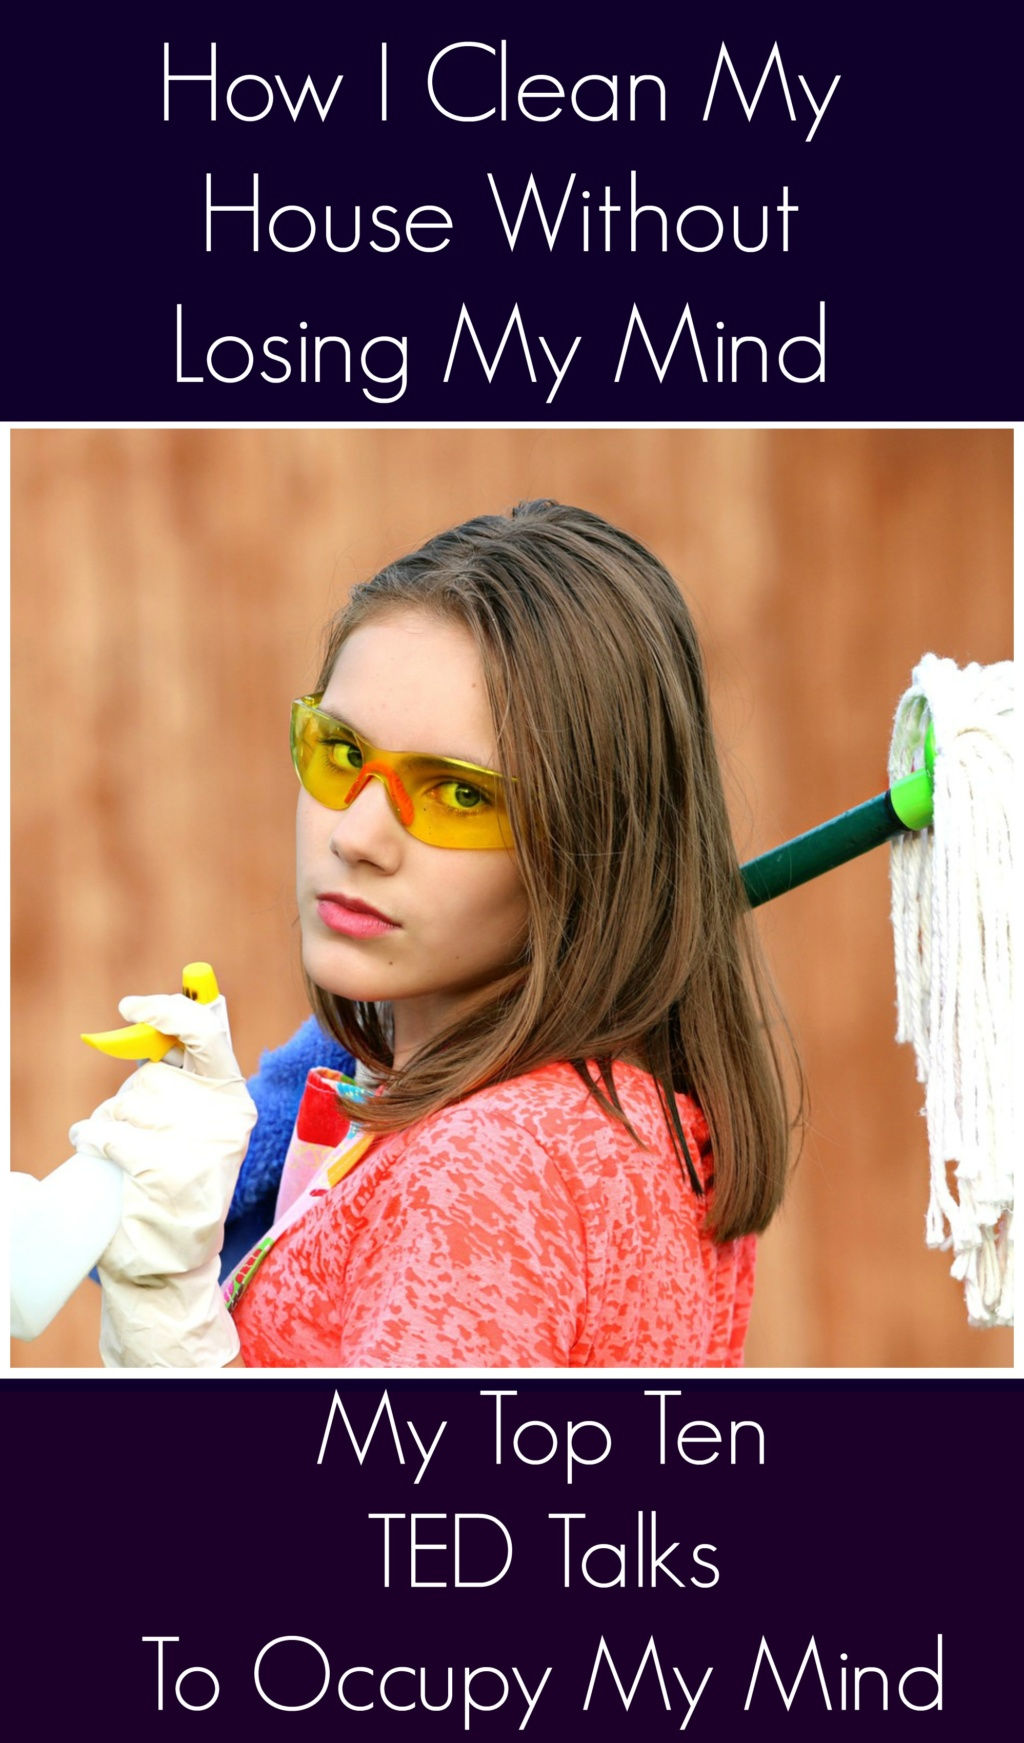 How I Clean My House Without Losing My Mind – My Top Ten TED Talks